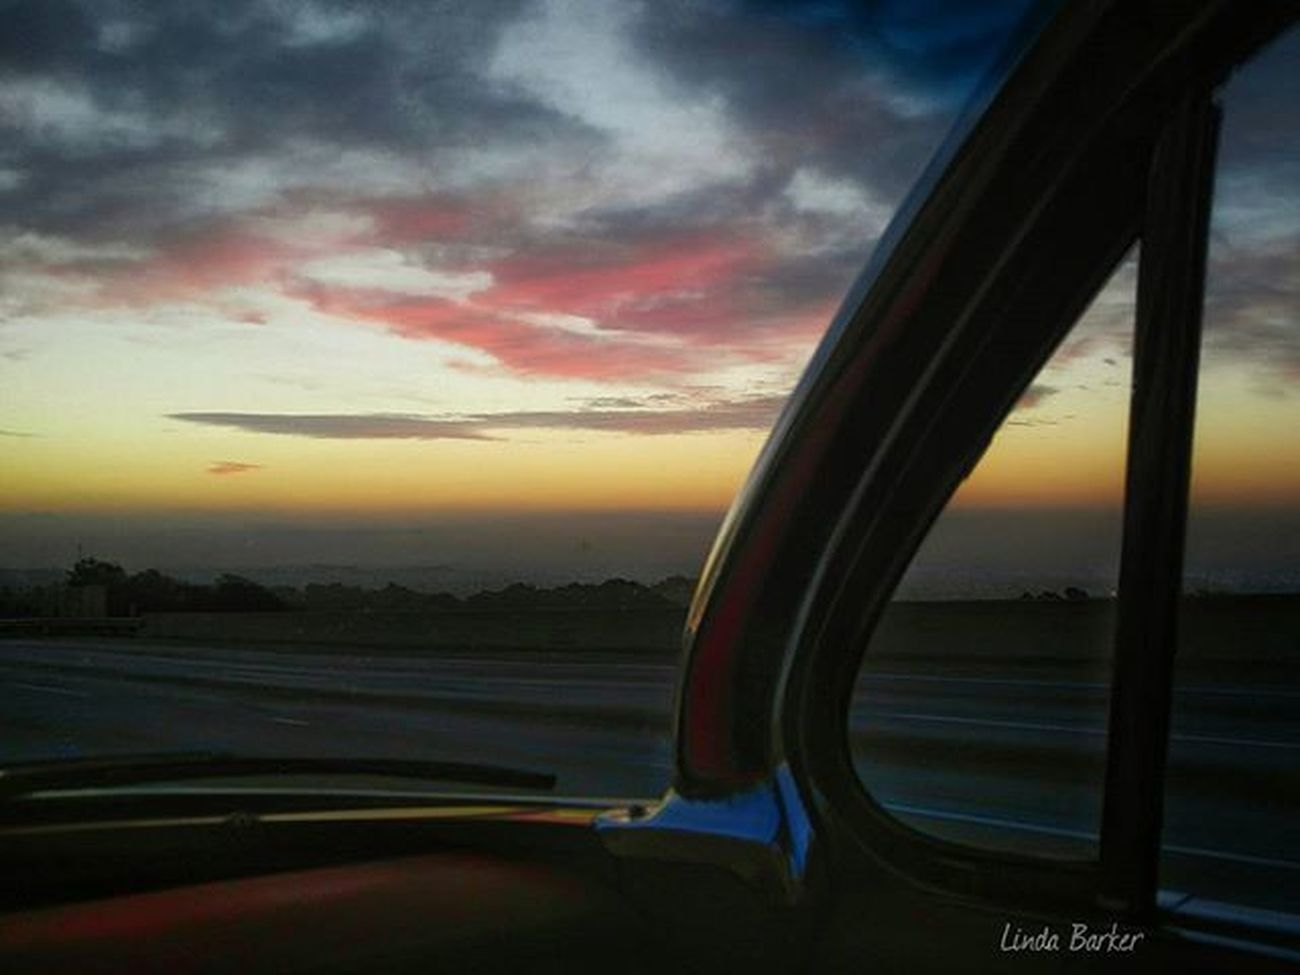 Headed to the Grandnationalroadstershow while Mother Nature puts on a show of her own thru the windshield of our 61chevy Impala Bubbletop Goodmorning California_igers